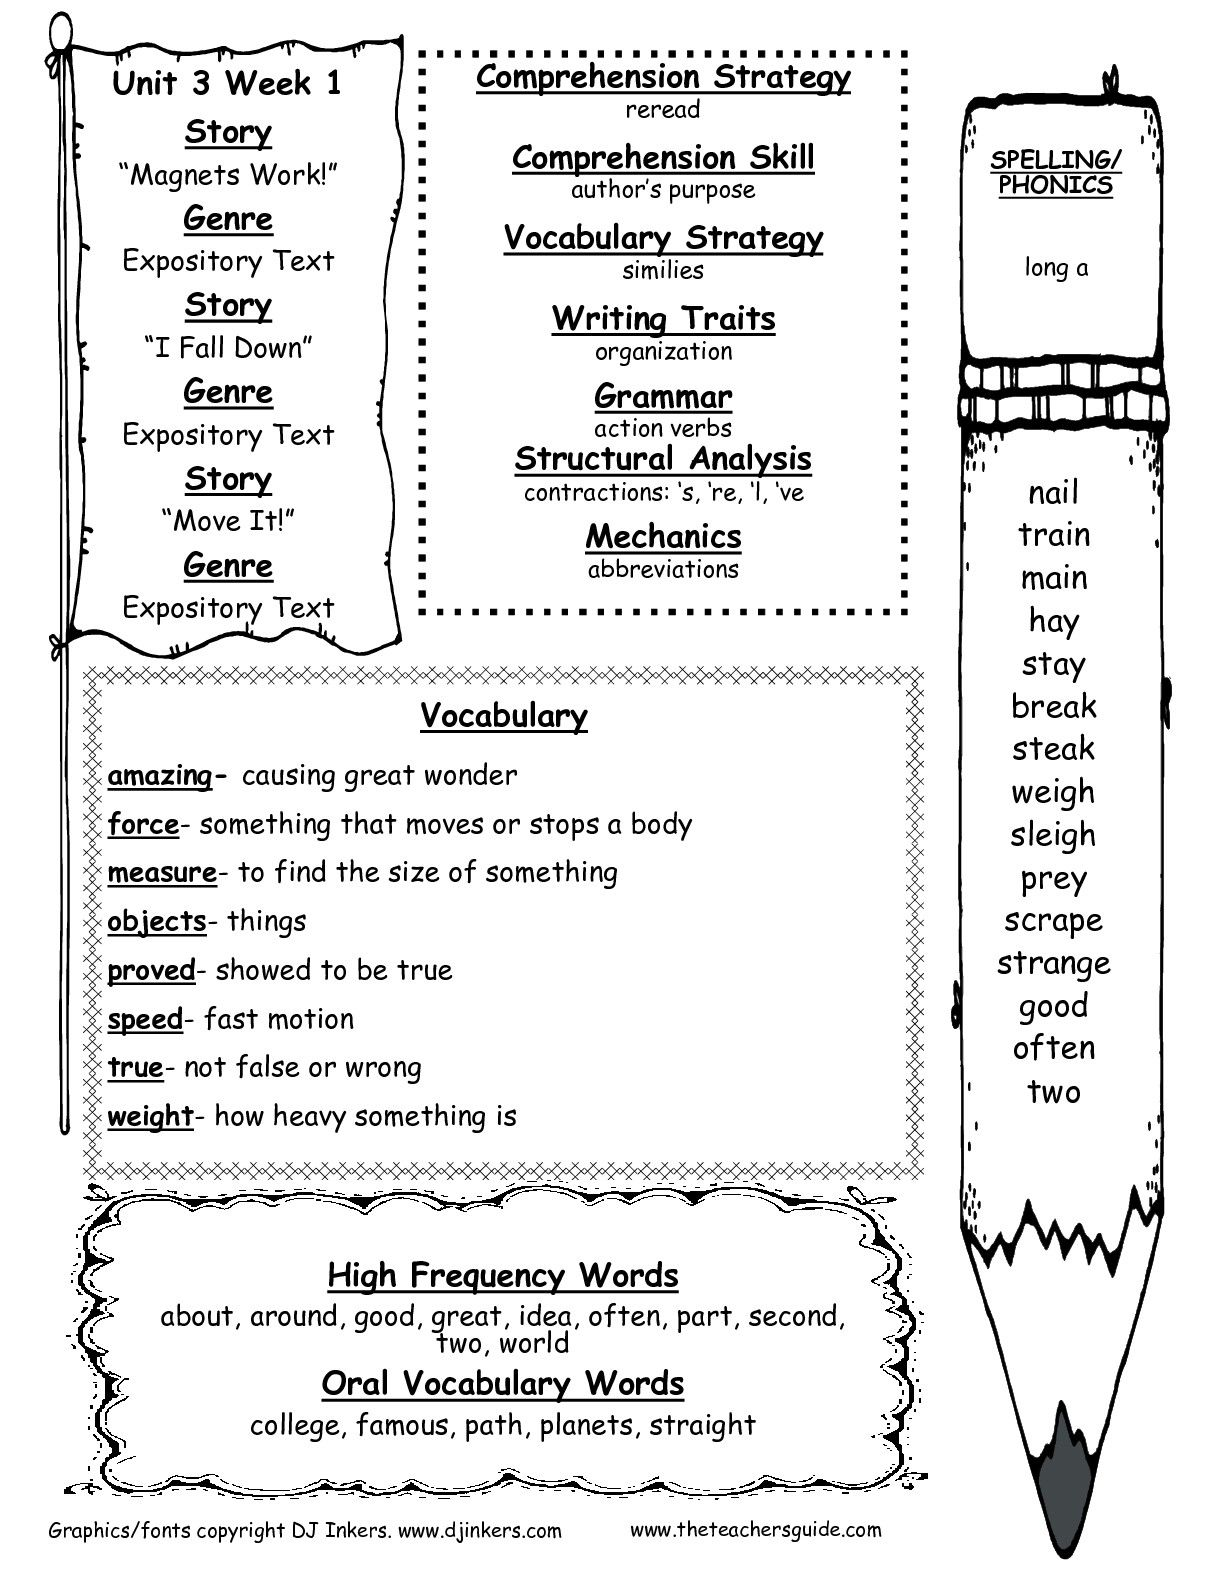 Worksheets Phonics Worksheets For Second Grade the teachers guide free worksheets smartboard templates and second grade wonders unit six week one printouts weekly outline